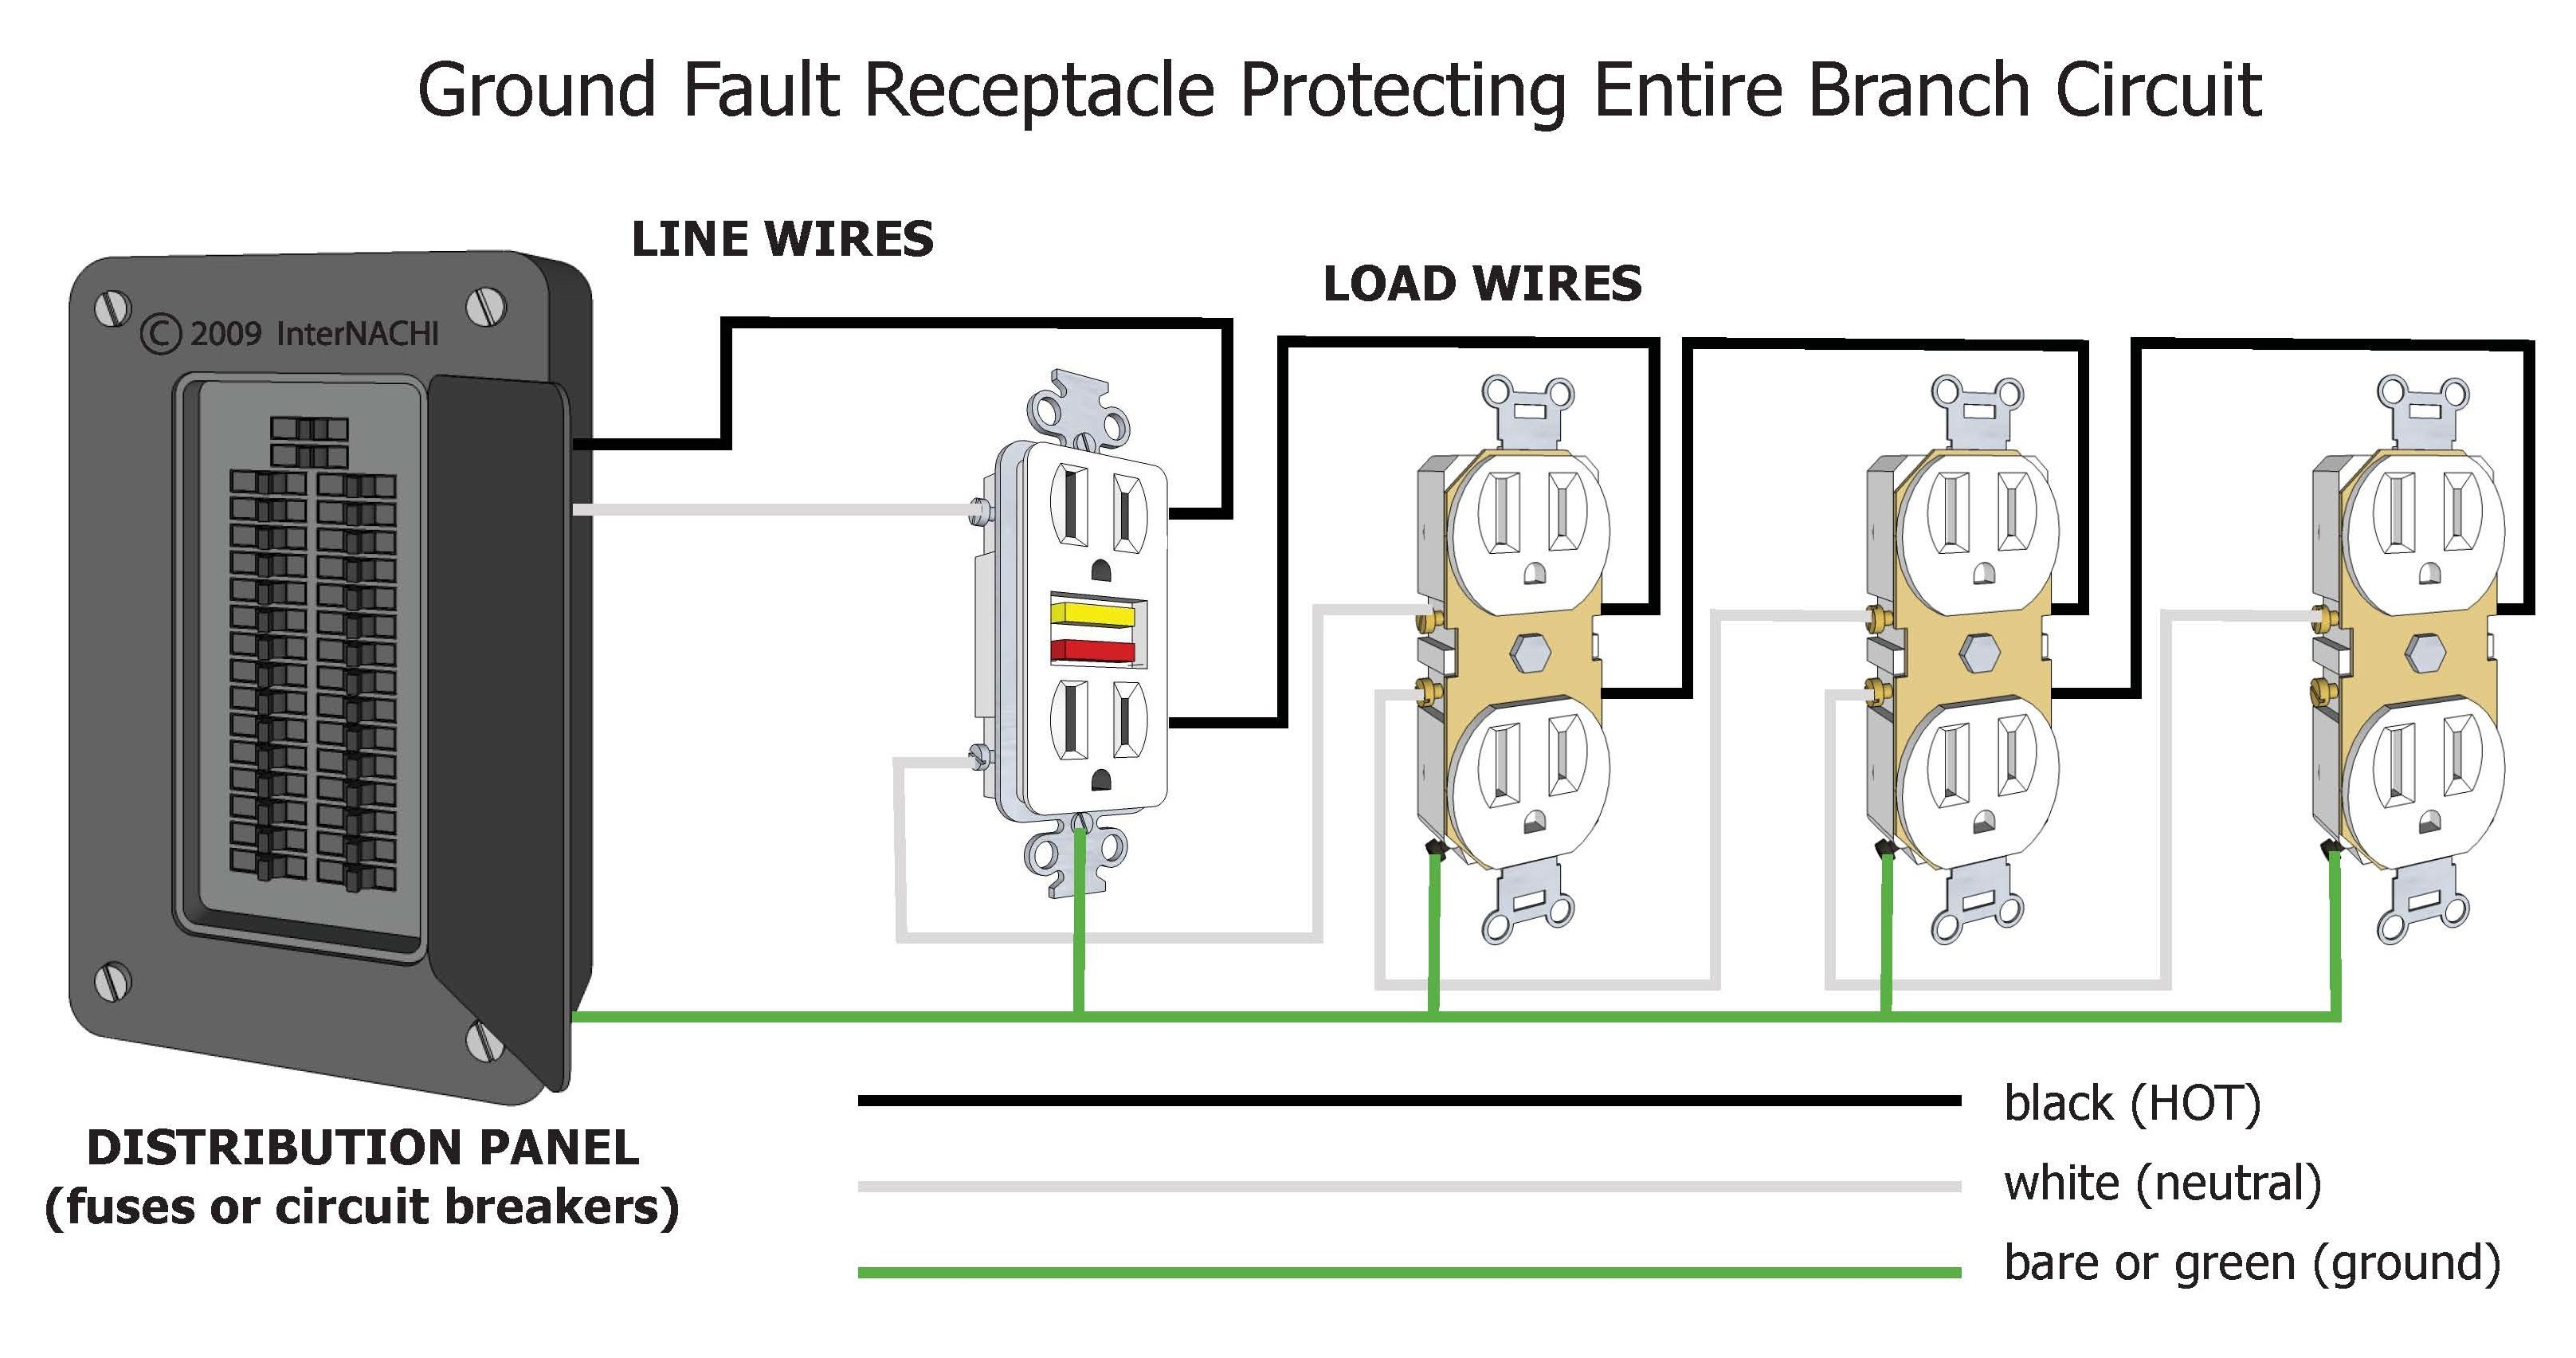 gfci branch circuit color gfci circuit breaker wiring diagram efcaviation com gfci wiring diagram at aneh.co